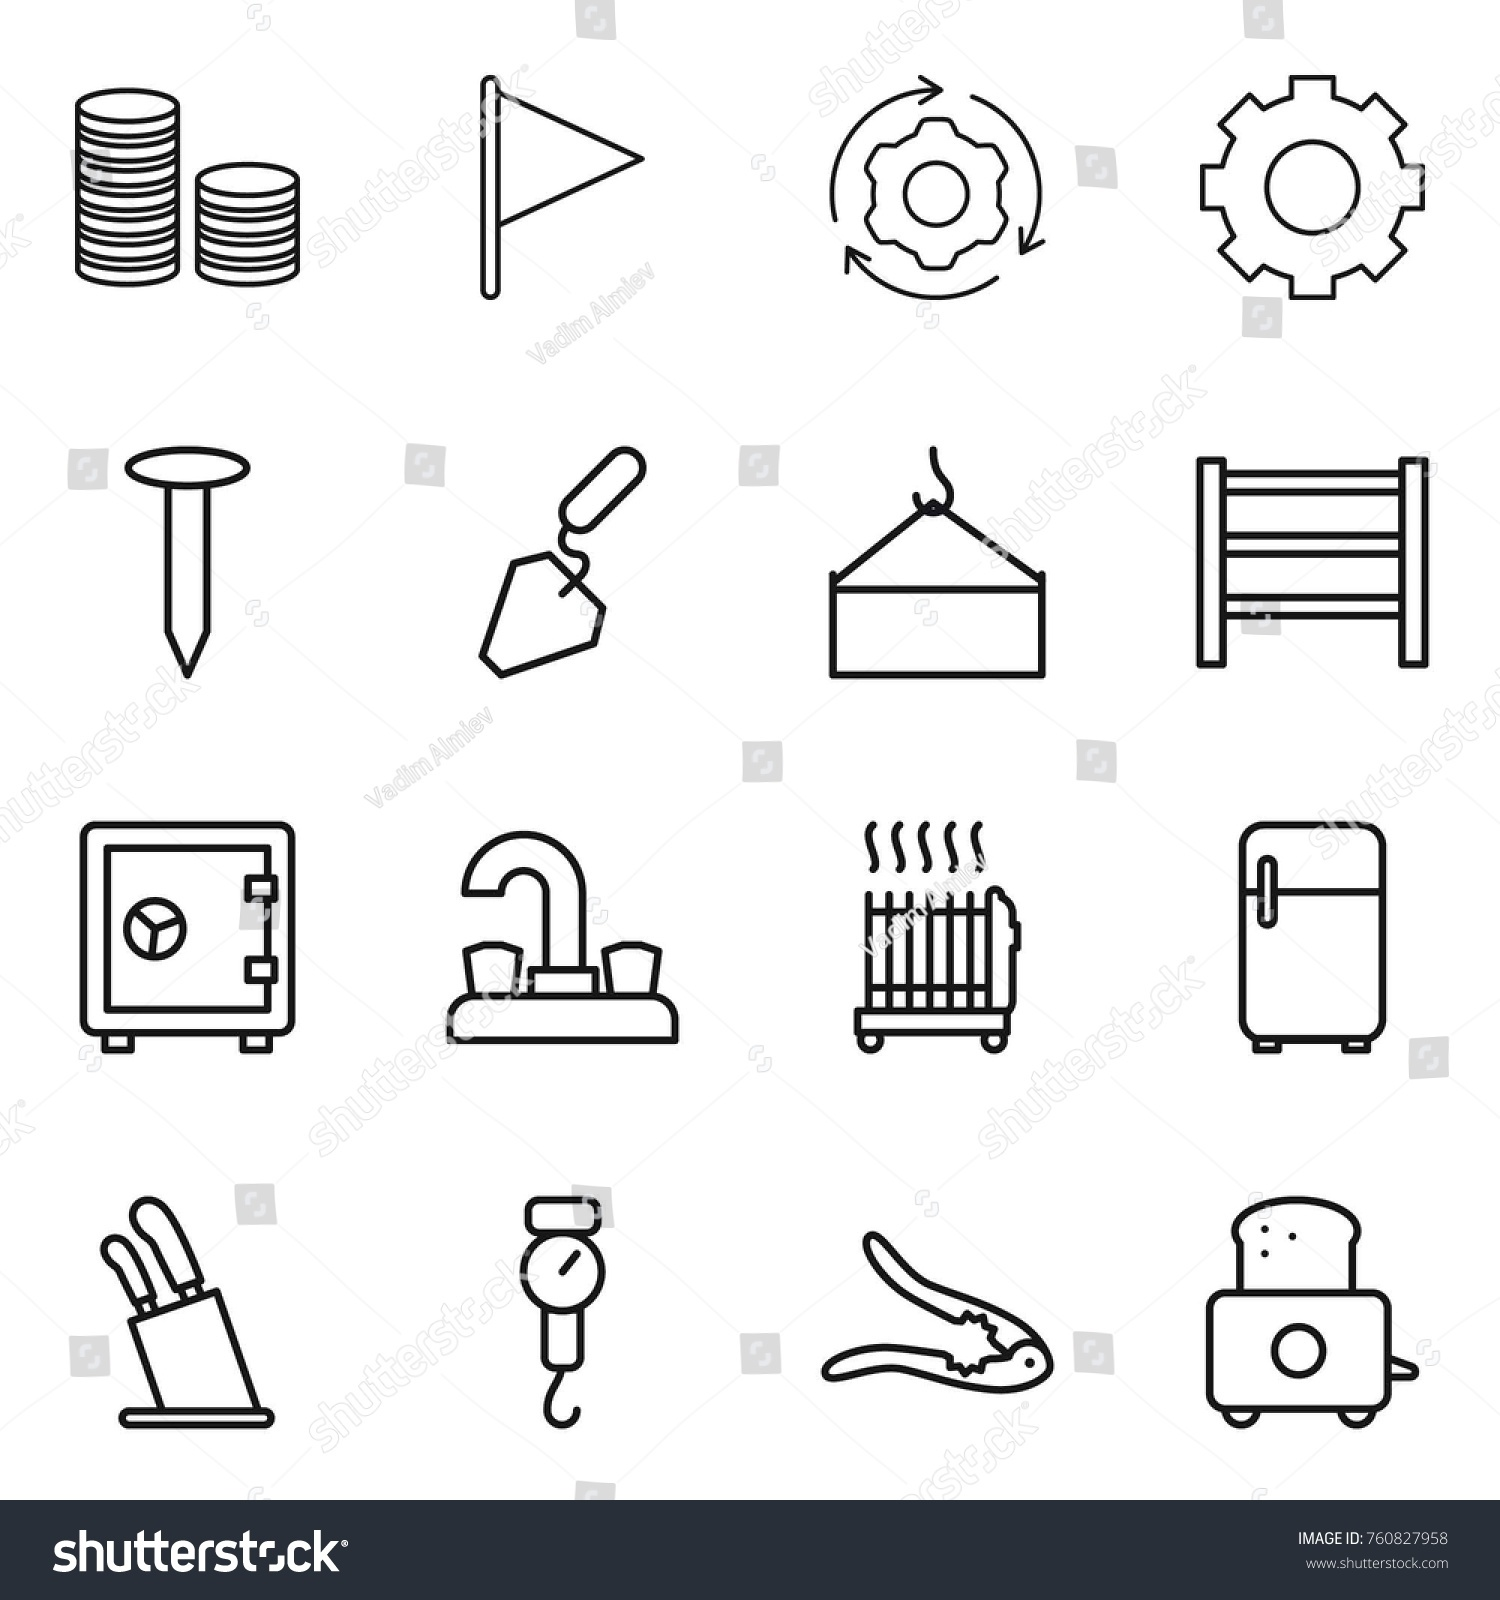 hight resolution of thin line icon set coin stack flag around gear nail construction